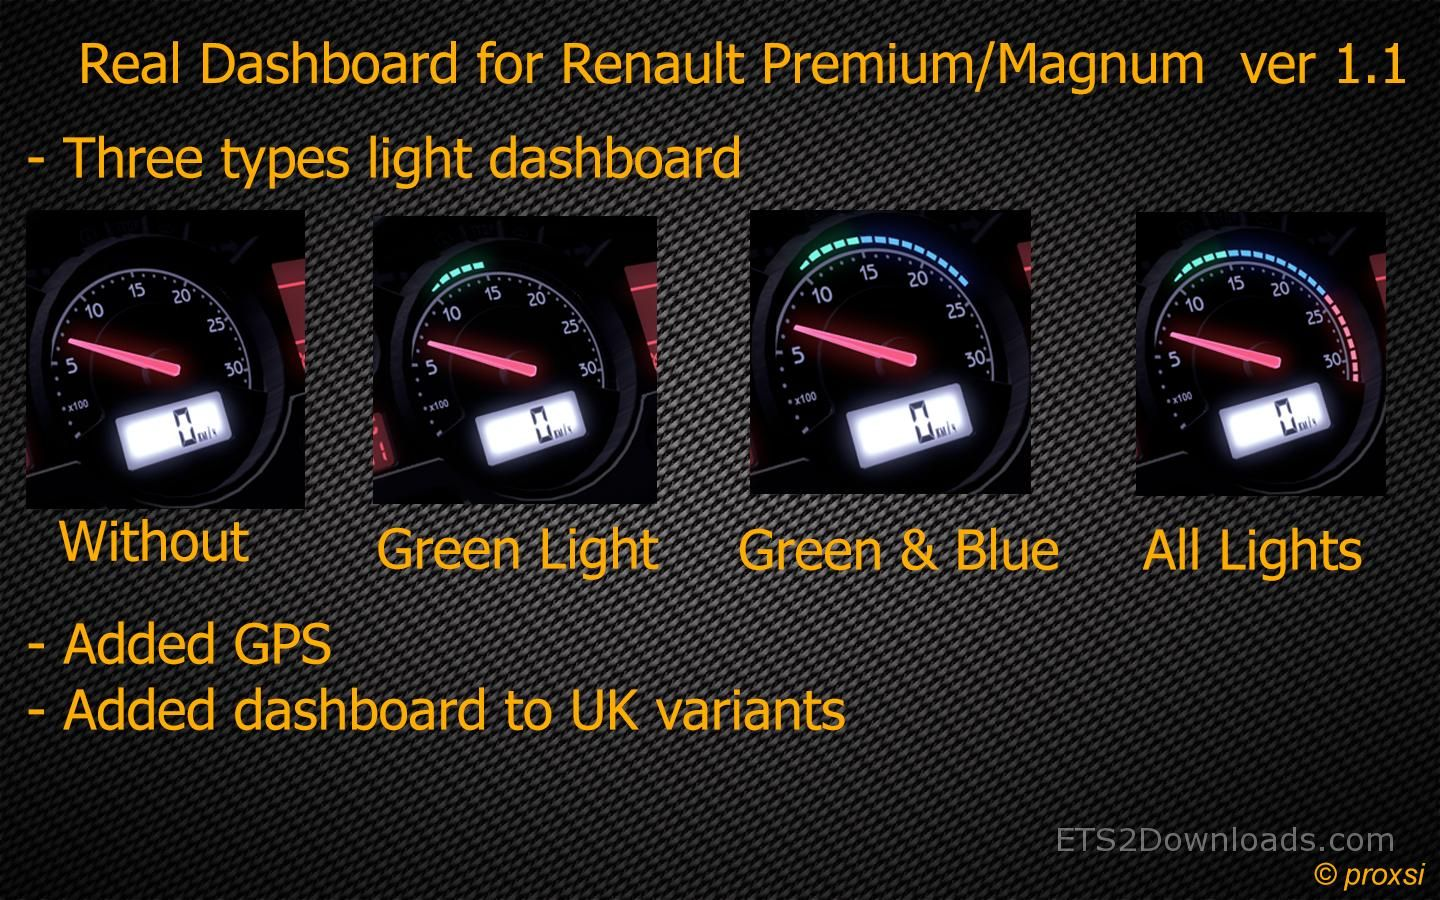 real-dashboard-for-renault-premiummagnum-v1-1